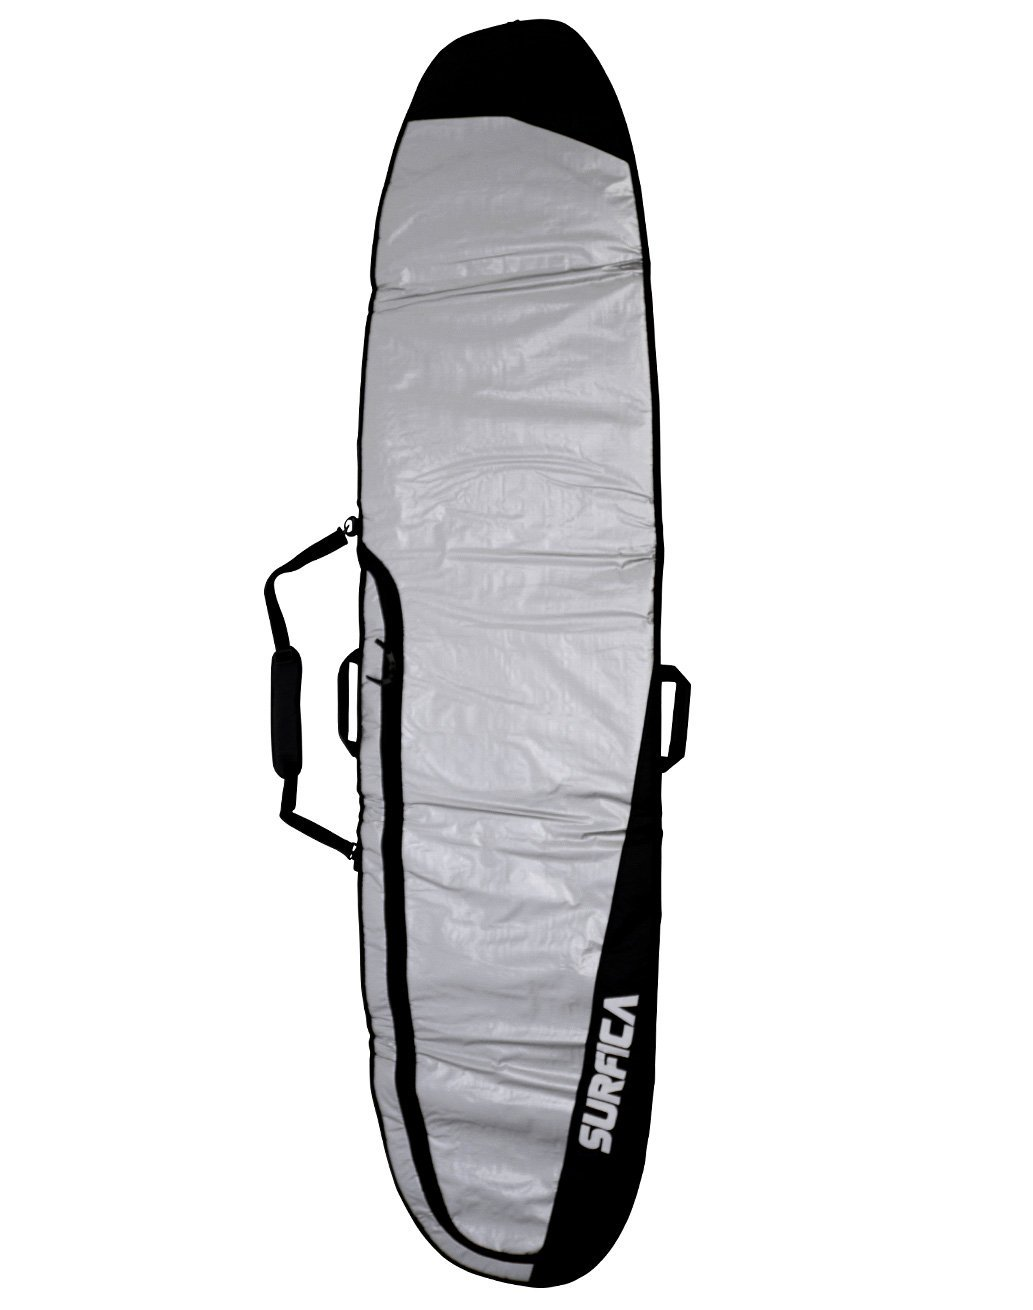 Surfica Longboard Bag (Online Only)